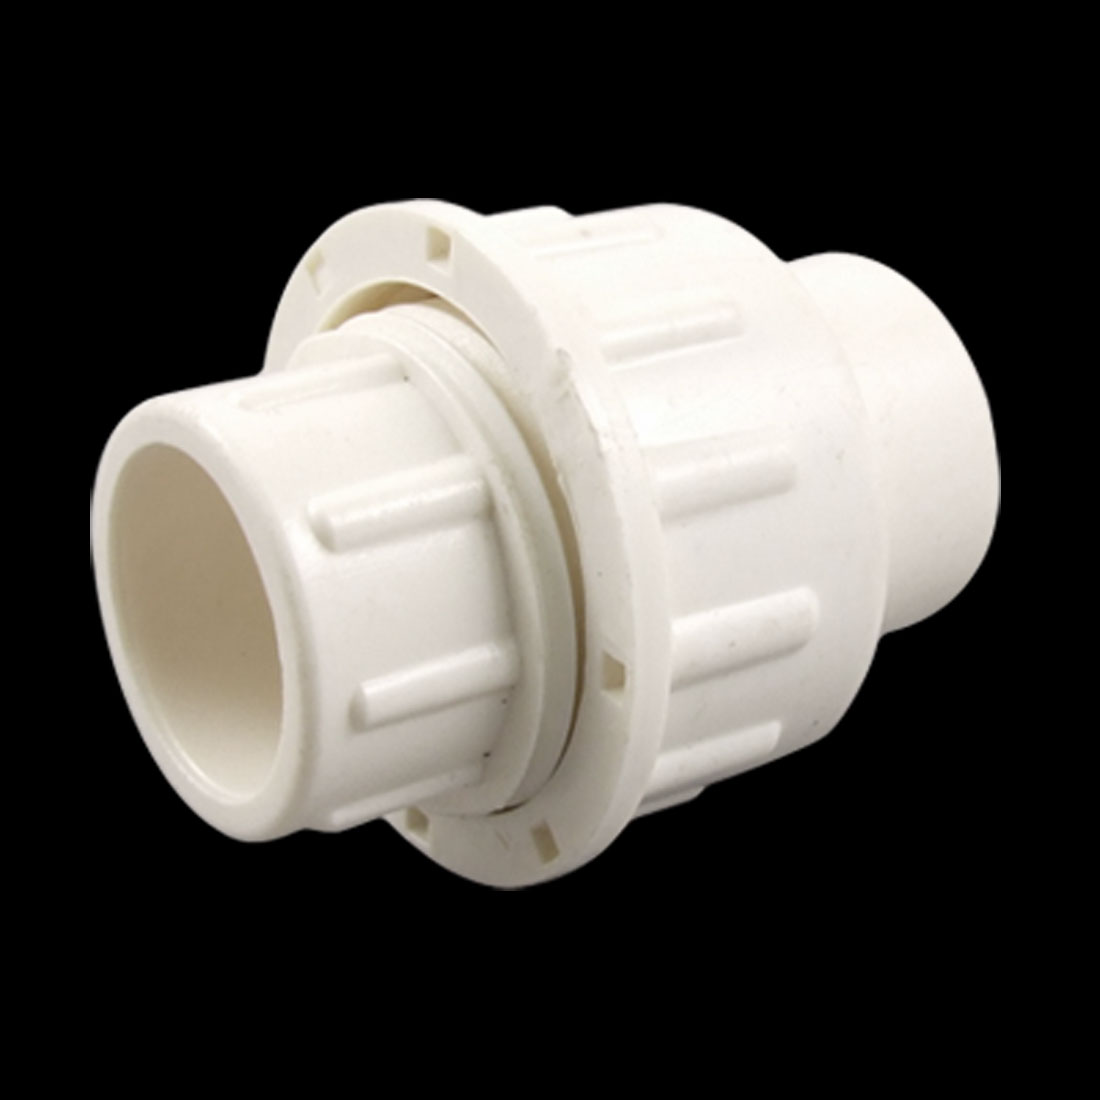 20mm Hole Dia. White PVC Plastic Water Pipe Adapter